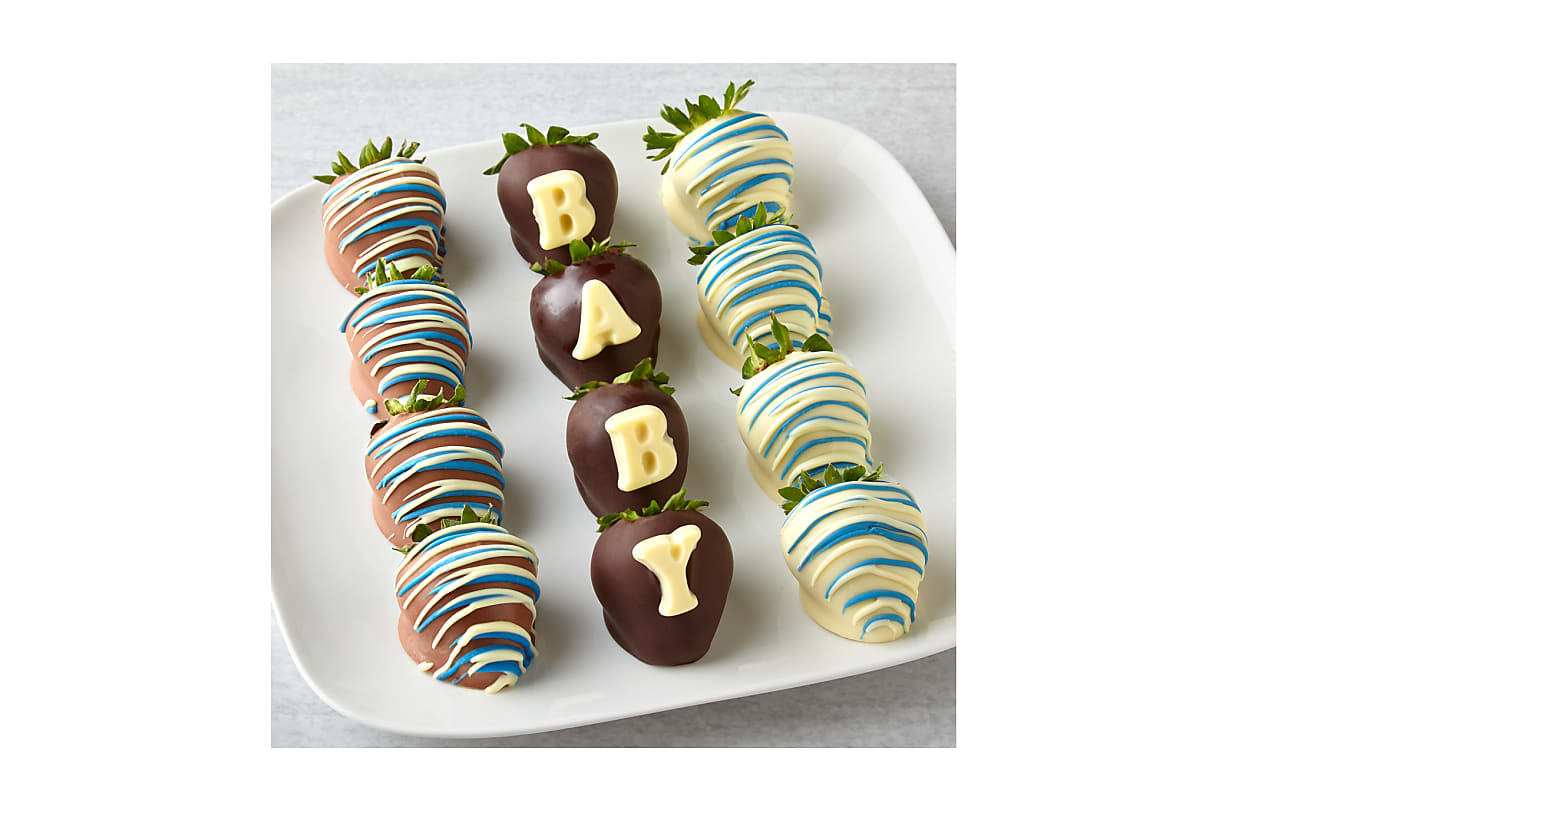 New Baby Blue Chocolate Covered Strawberries